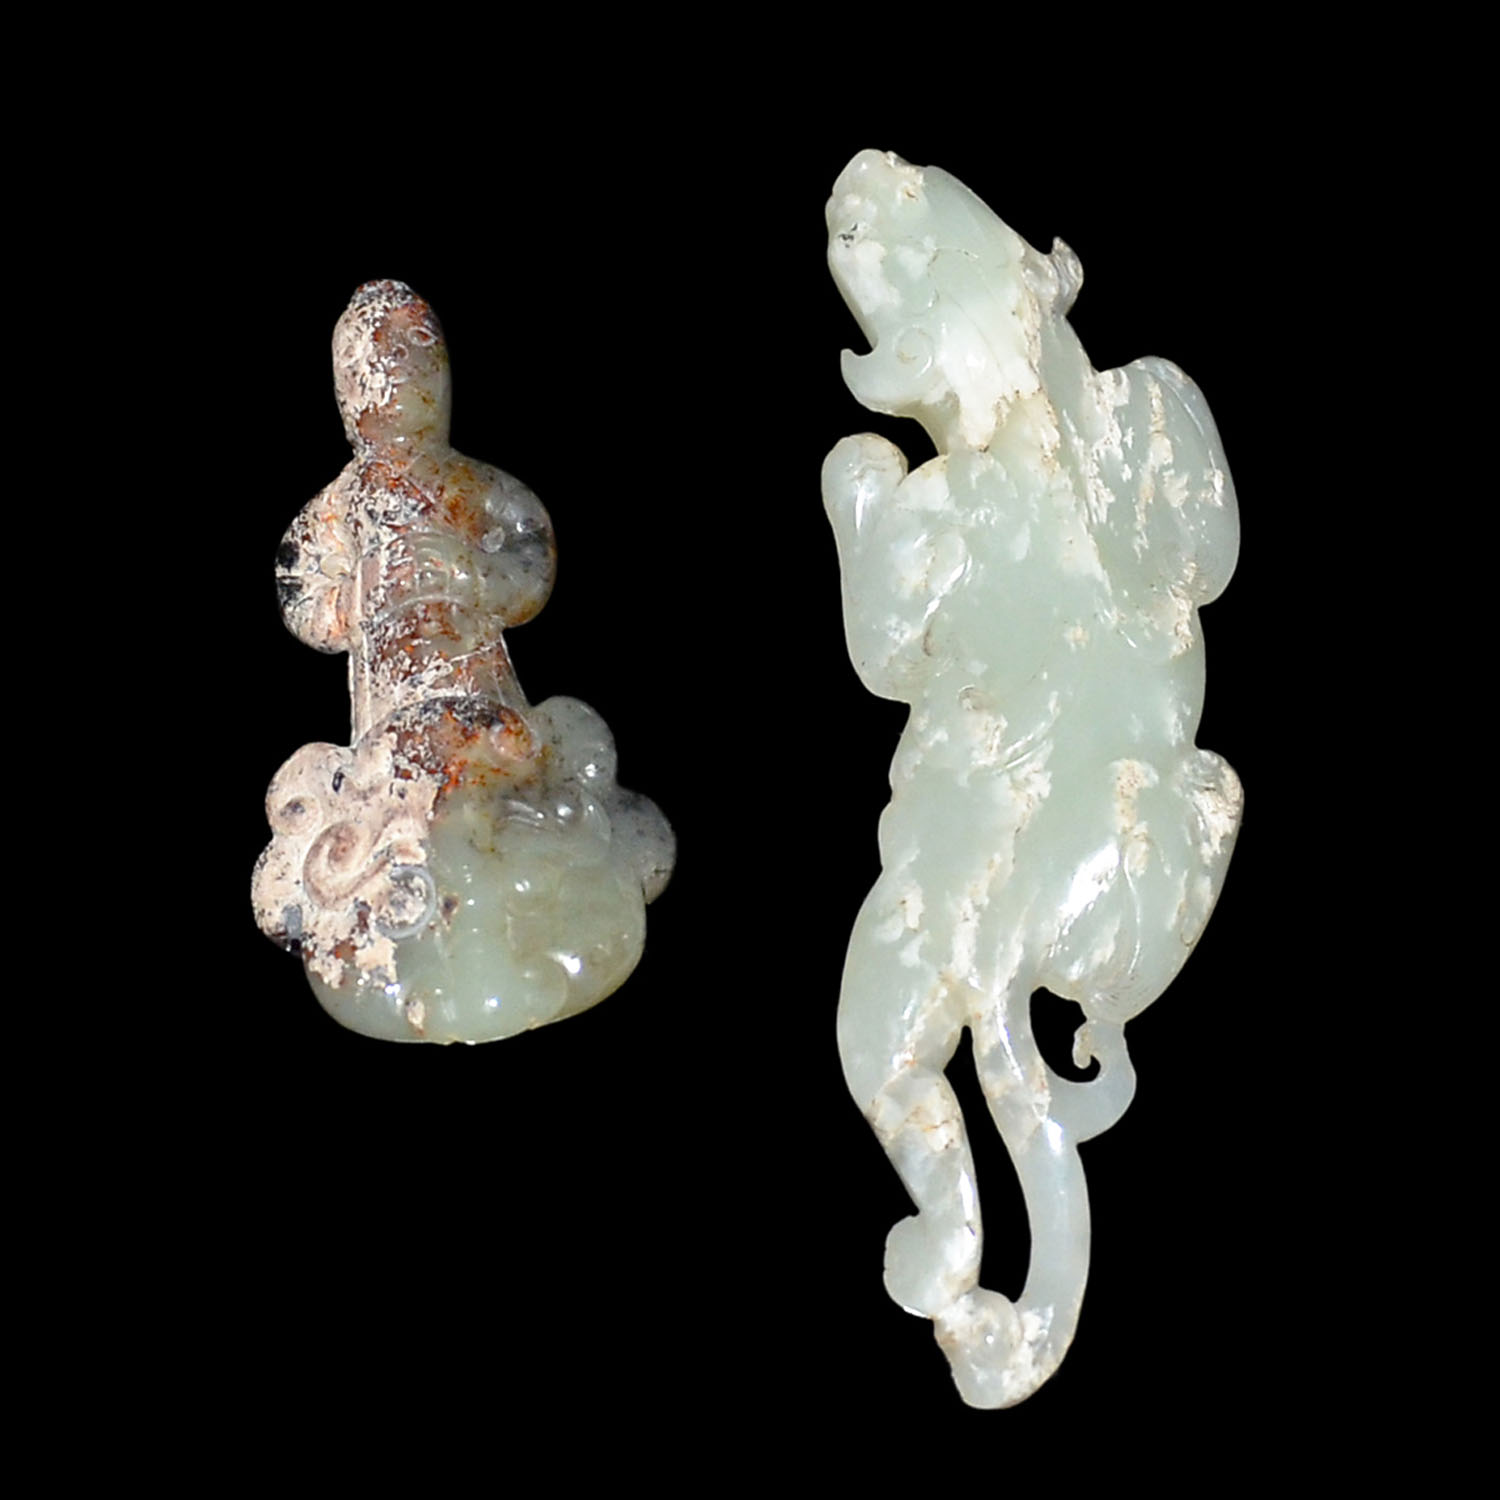 Lot 19 - 白玉螭龍小賞件(尾有傷) 玉雕人物獸首佩 Two Jade Carvings: Qilin and Mythical Beast (Minor chip at Qilin)  Height: 3⅛